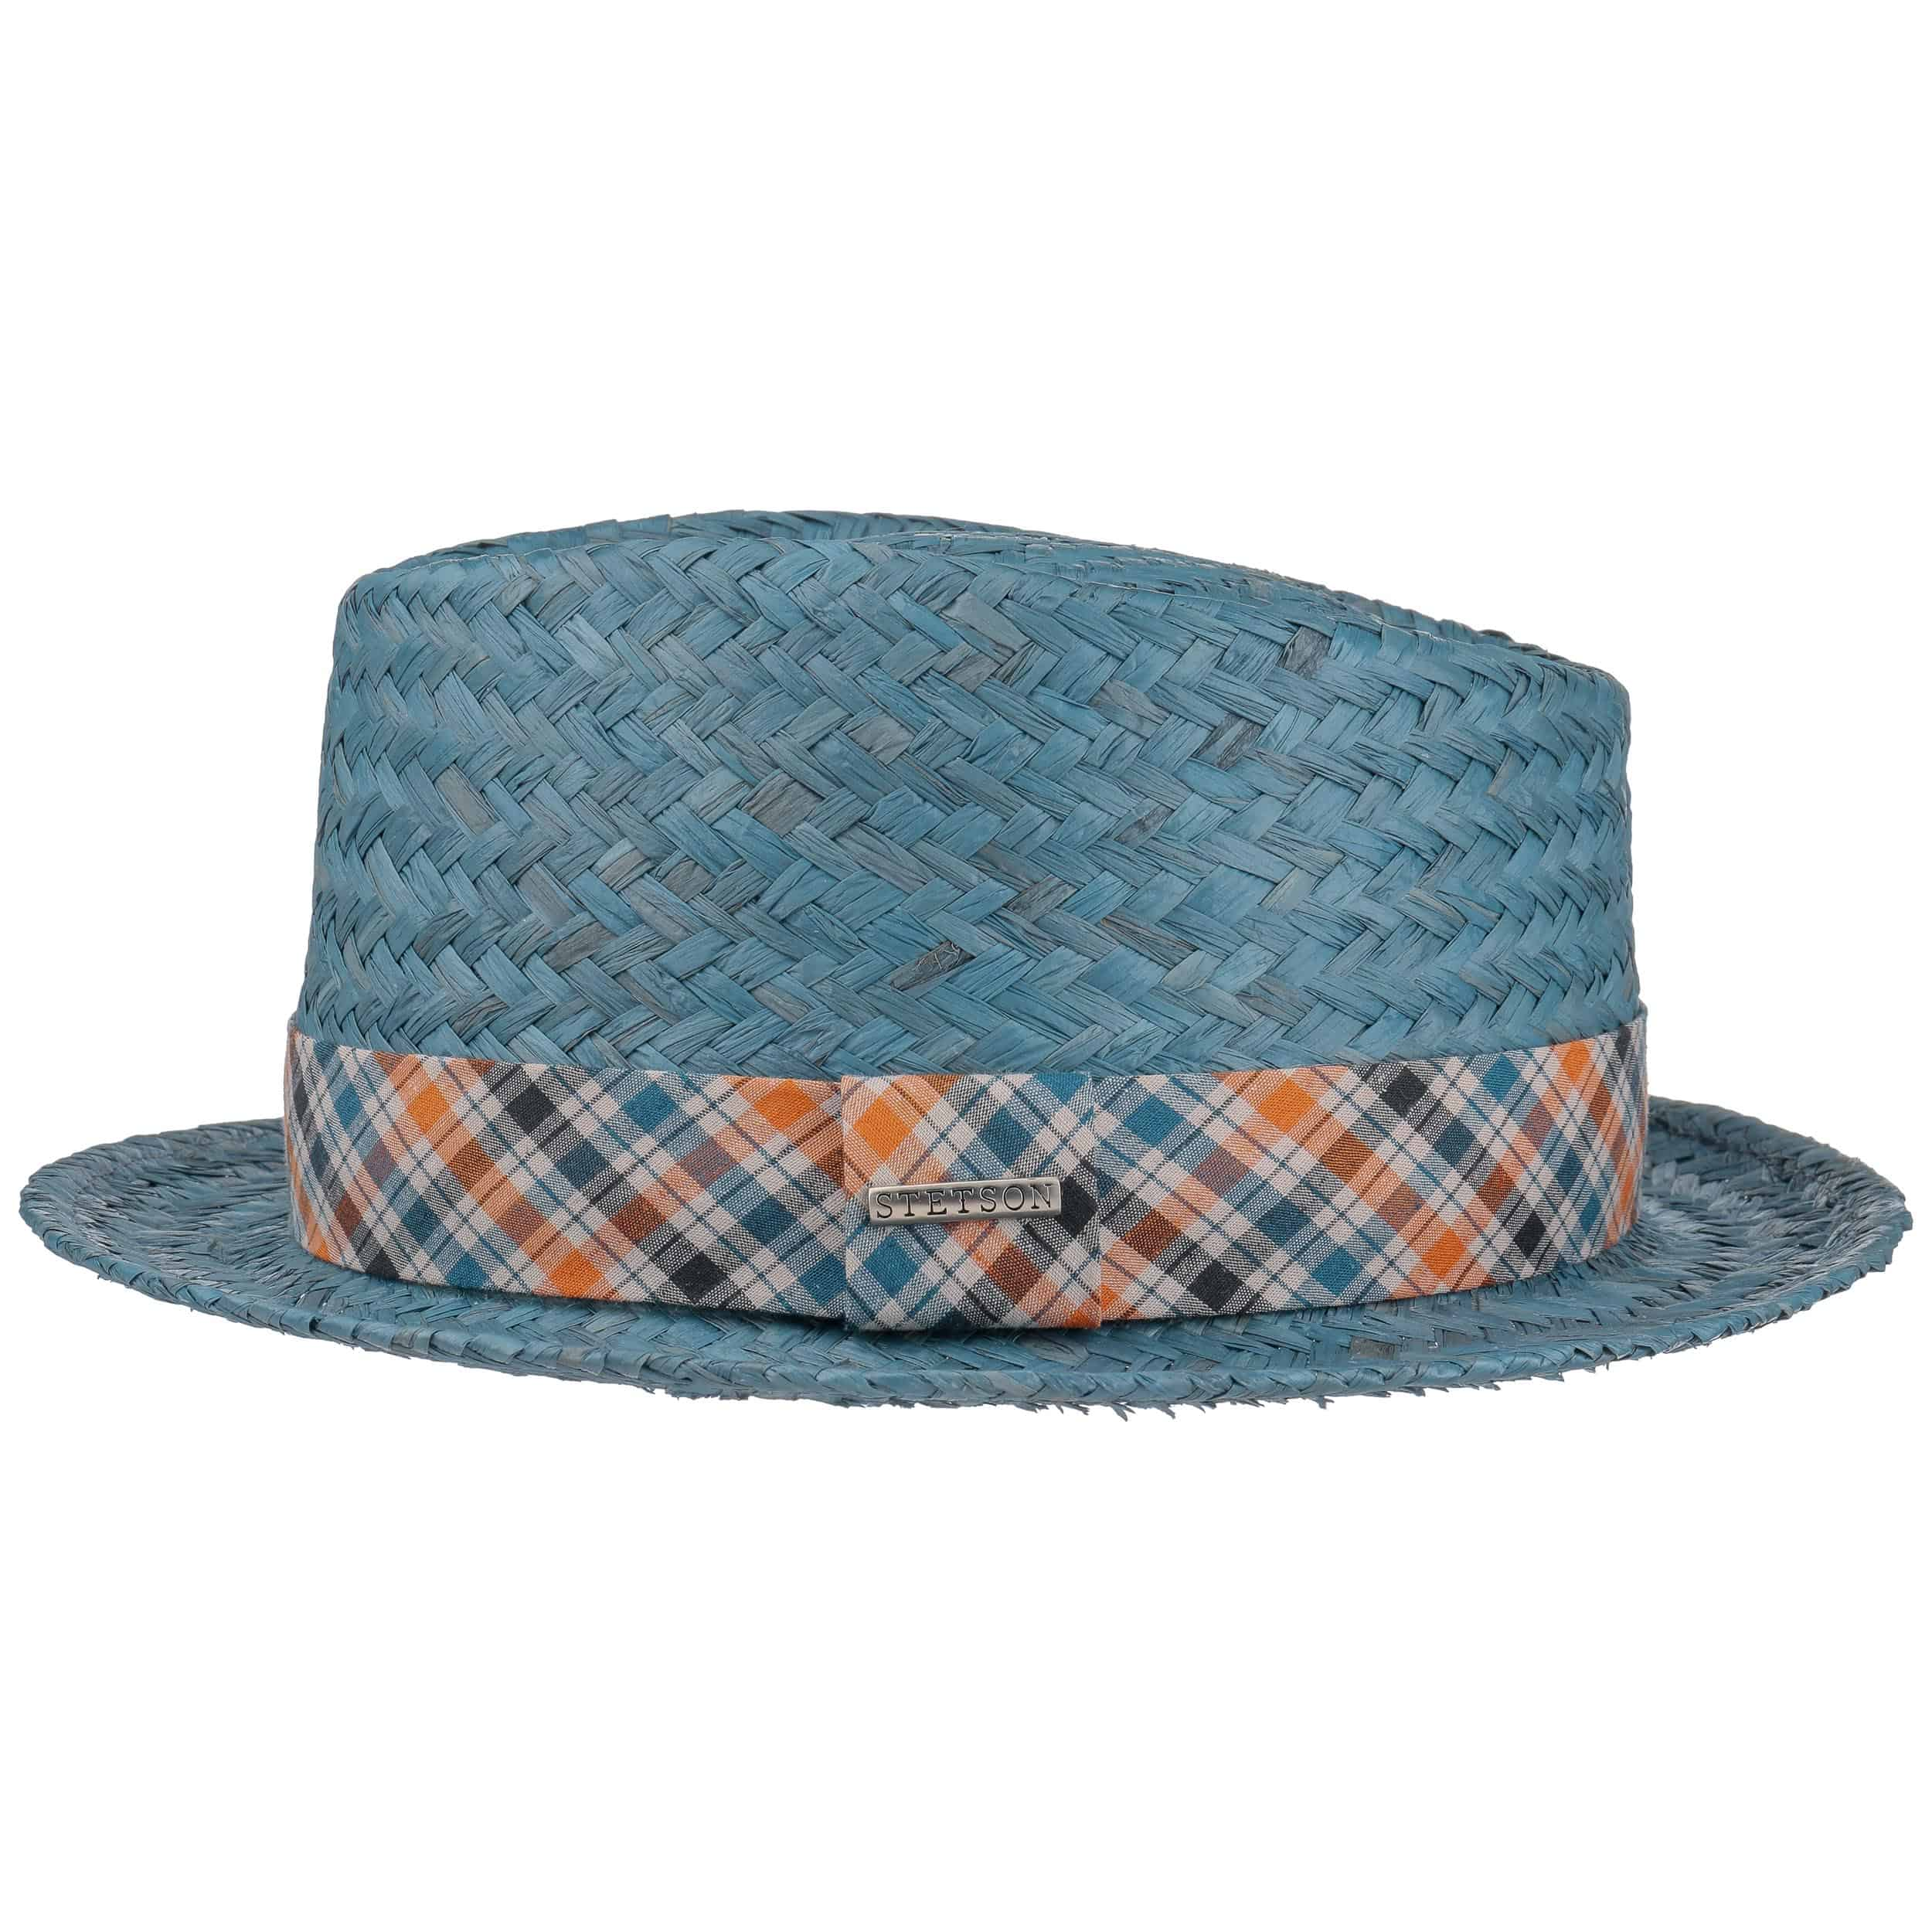 Outlet Pay With Paypal Simsbury Raffia Straw Hat by Stetson Sun hats Stetson Cheap Sale 2018 Newest GOmmdk2I